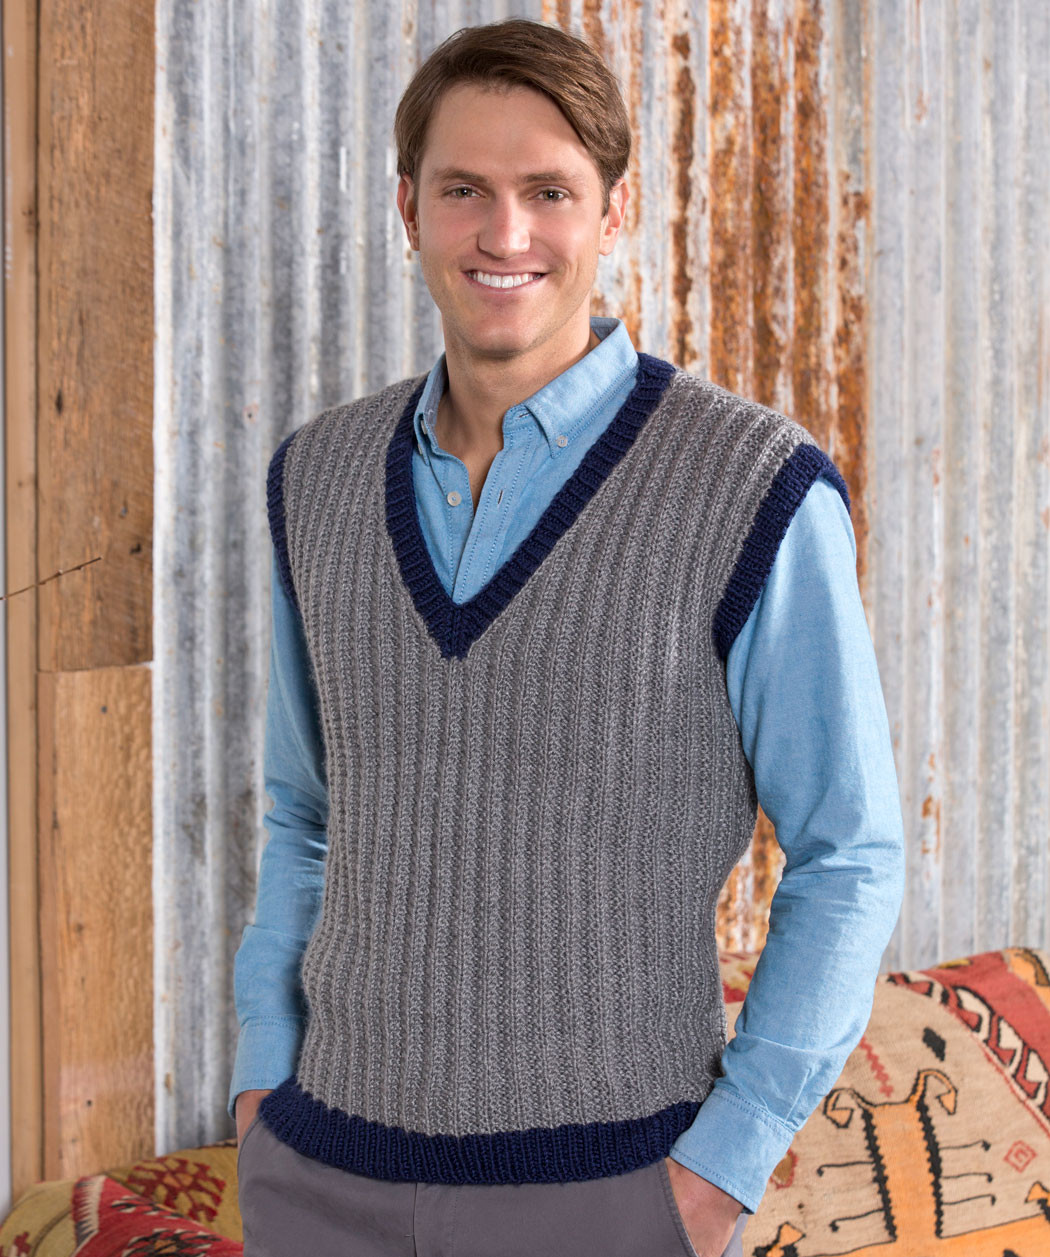 Awesome Free Crochet Sweater Vest Patterns Crochet and Knit Free Knitted Vest Patterns Of Adorable 39 Photos Free Knitted Vest Patterns